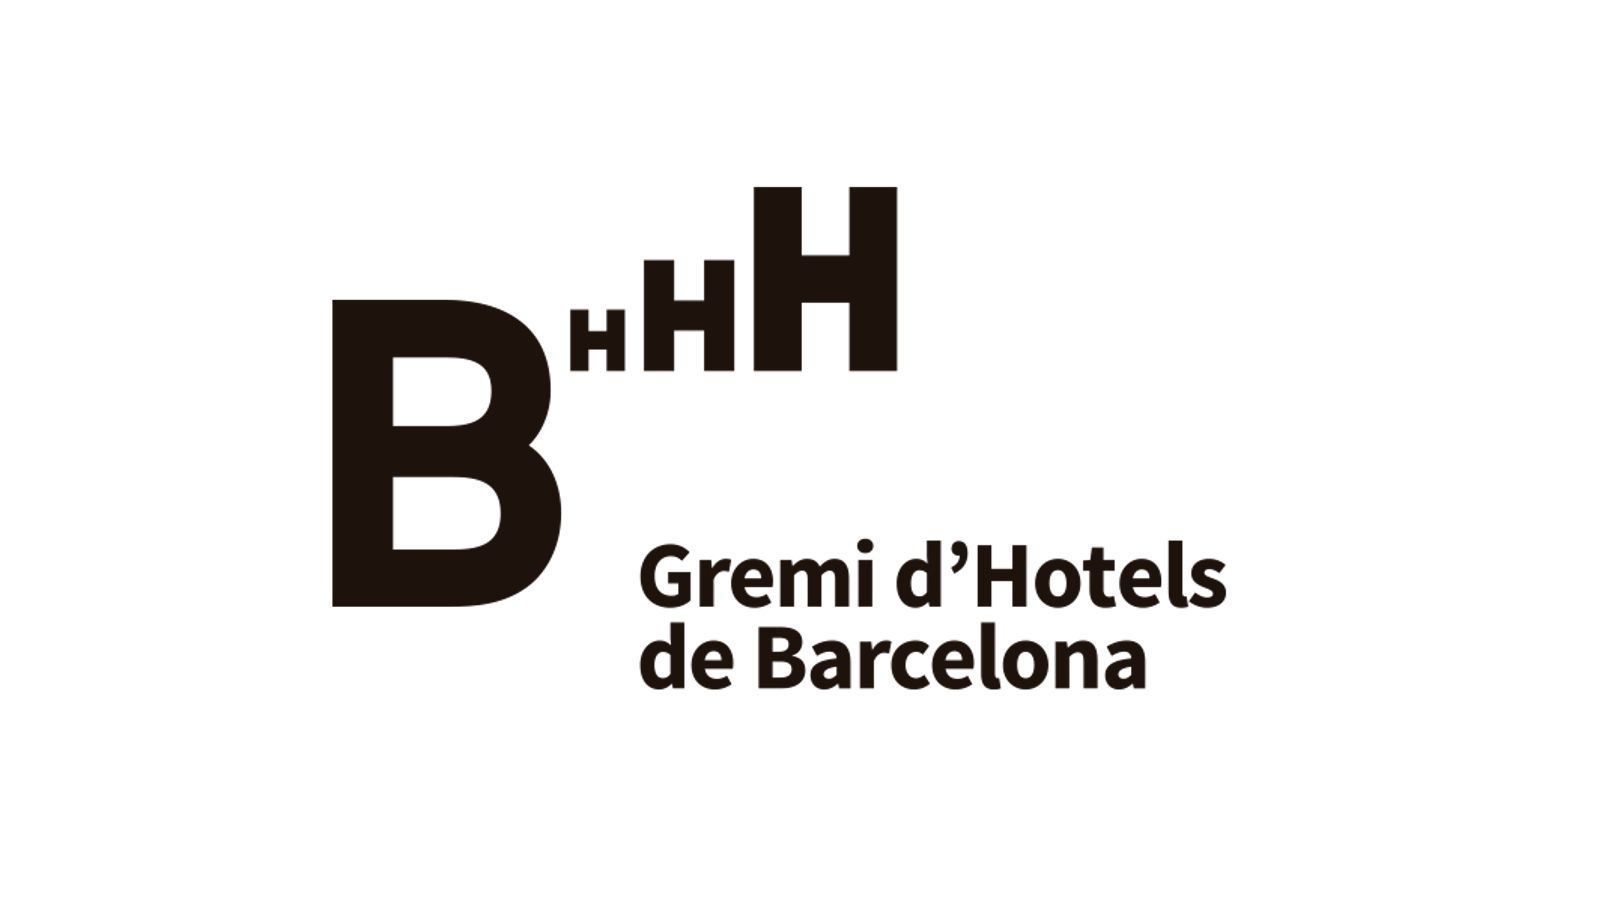 Awards by Barcelona Hotel Association for Le Méridien Barcelona